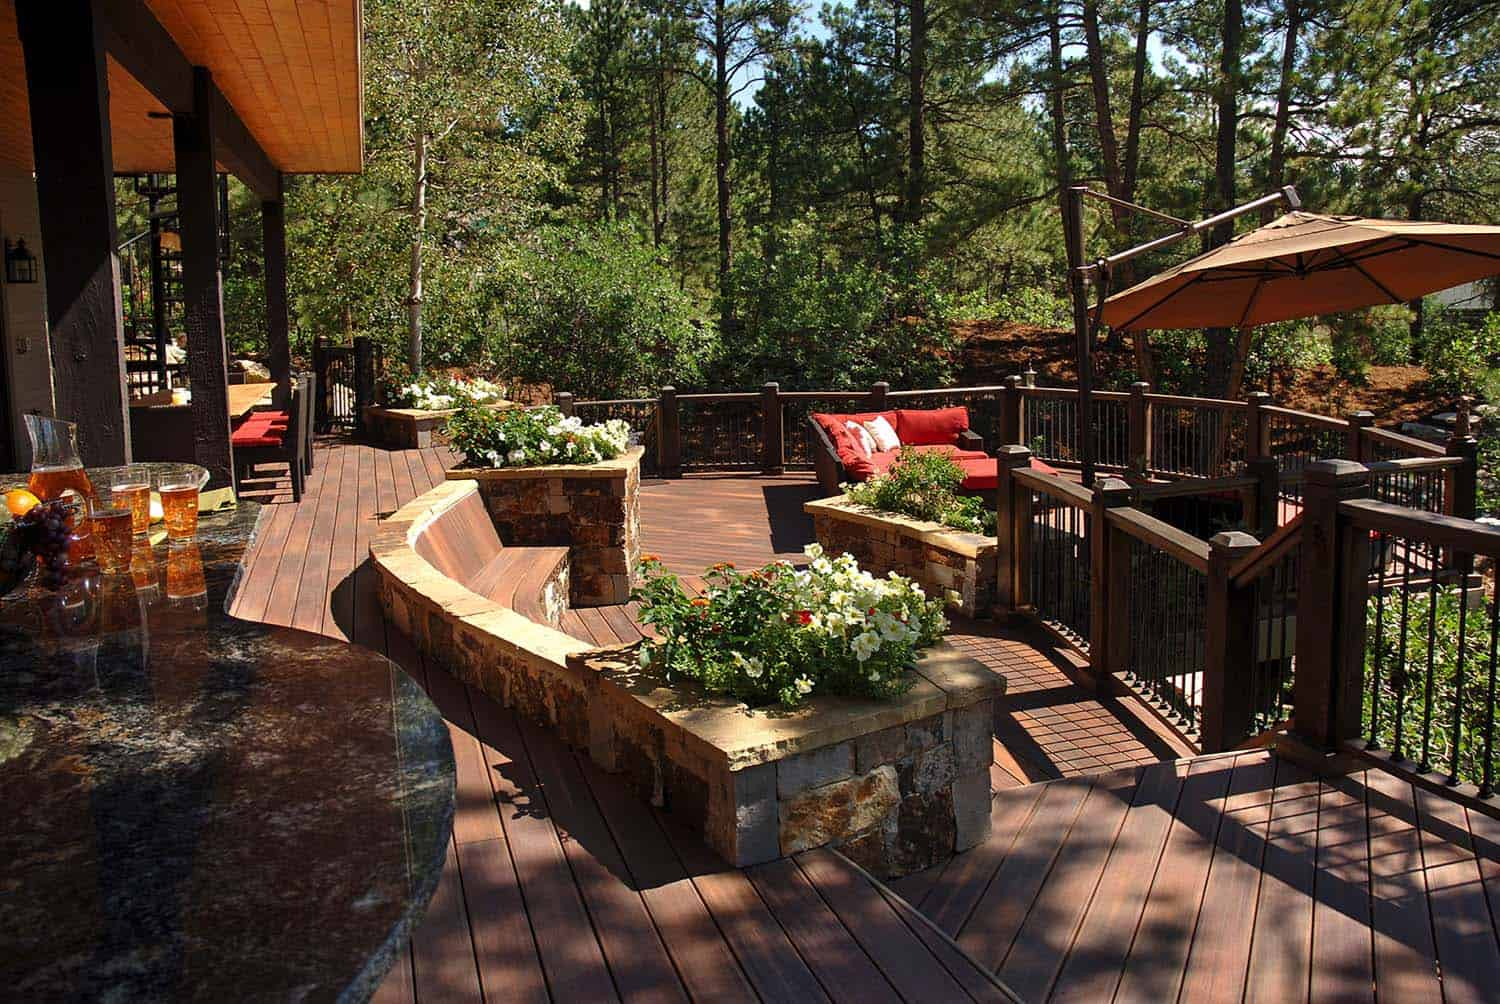 25 Amazing Ideas For Creating An Outdoor Deck For